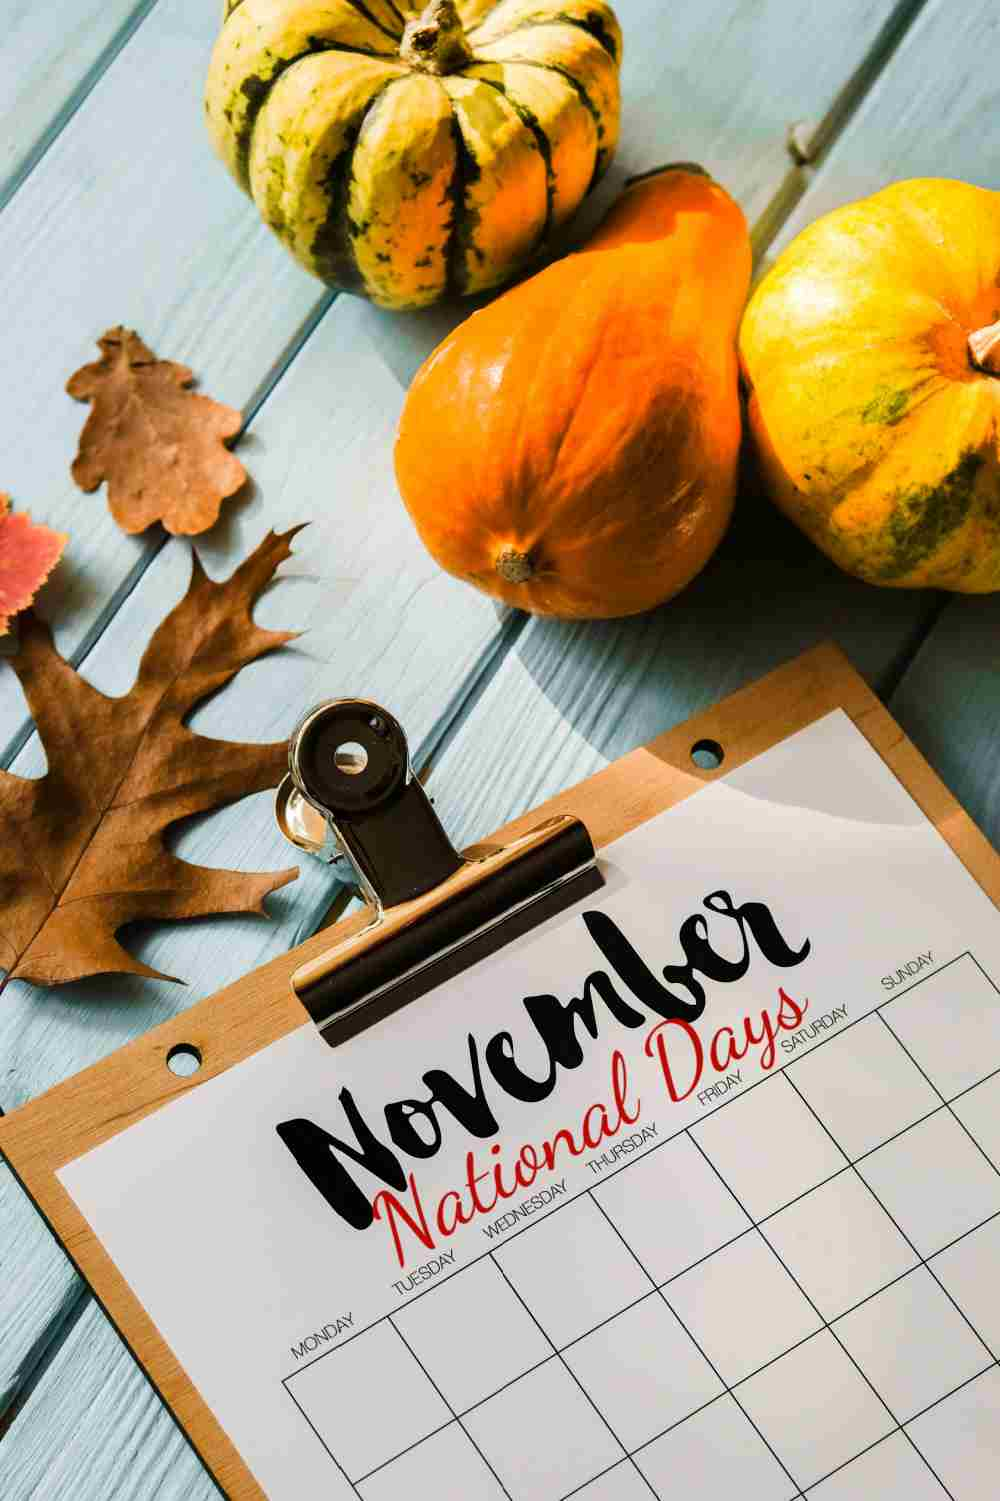 Pumpkins and leaves with a calendar of November National Days..